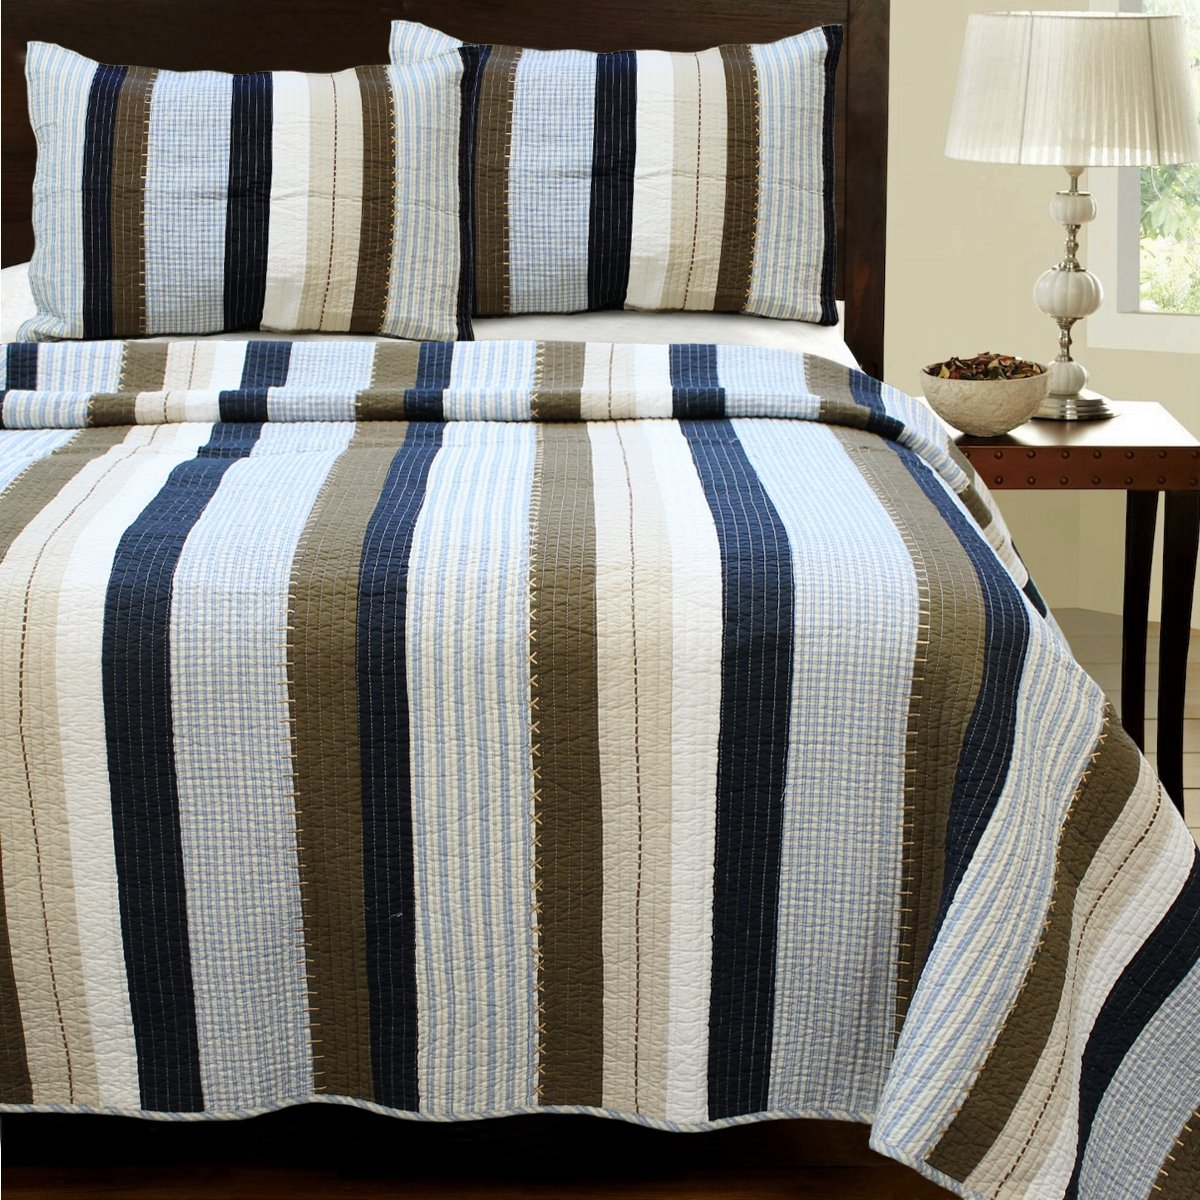 Cozy Line Home Fashions Nathan Quilt Bedding Set, Navy/Blue/White/Brown Plaid Striped 100% Cotton, Reversible Coverlet, Bedspread Set